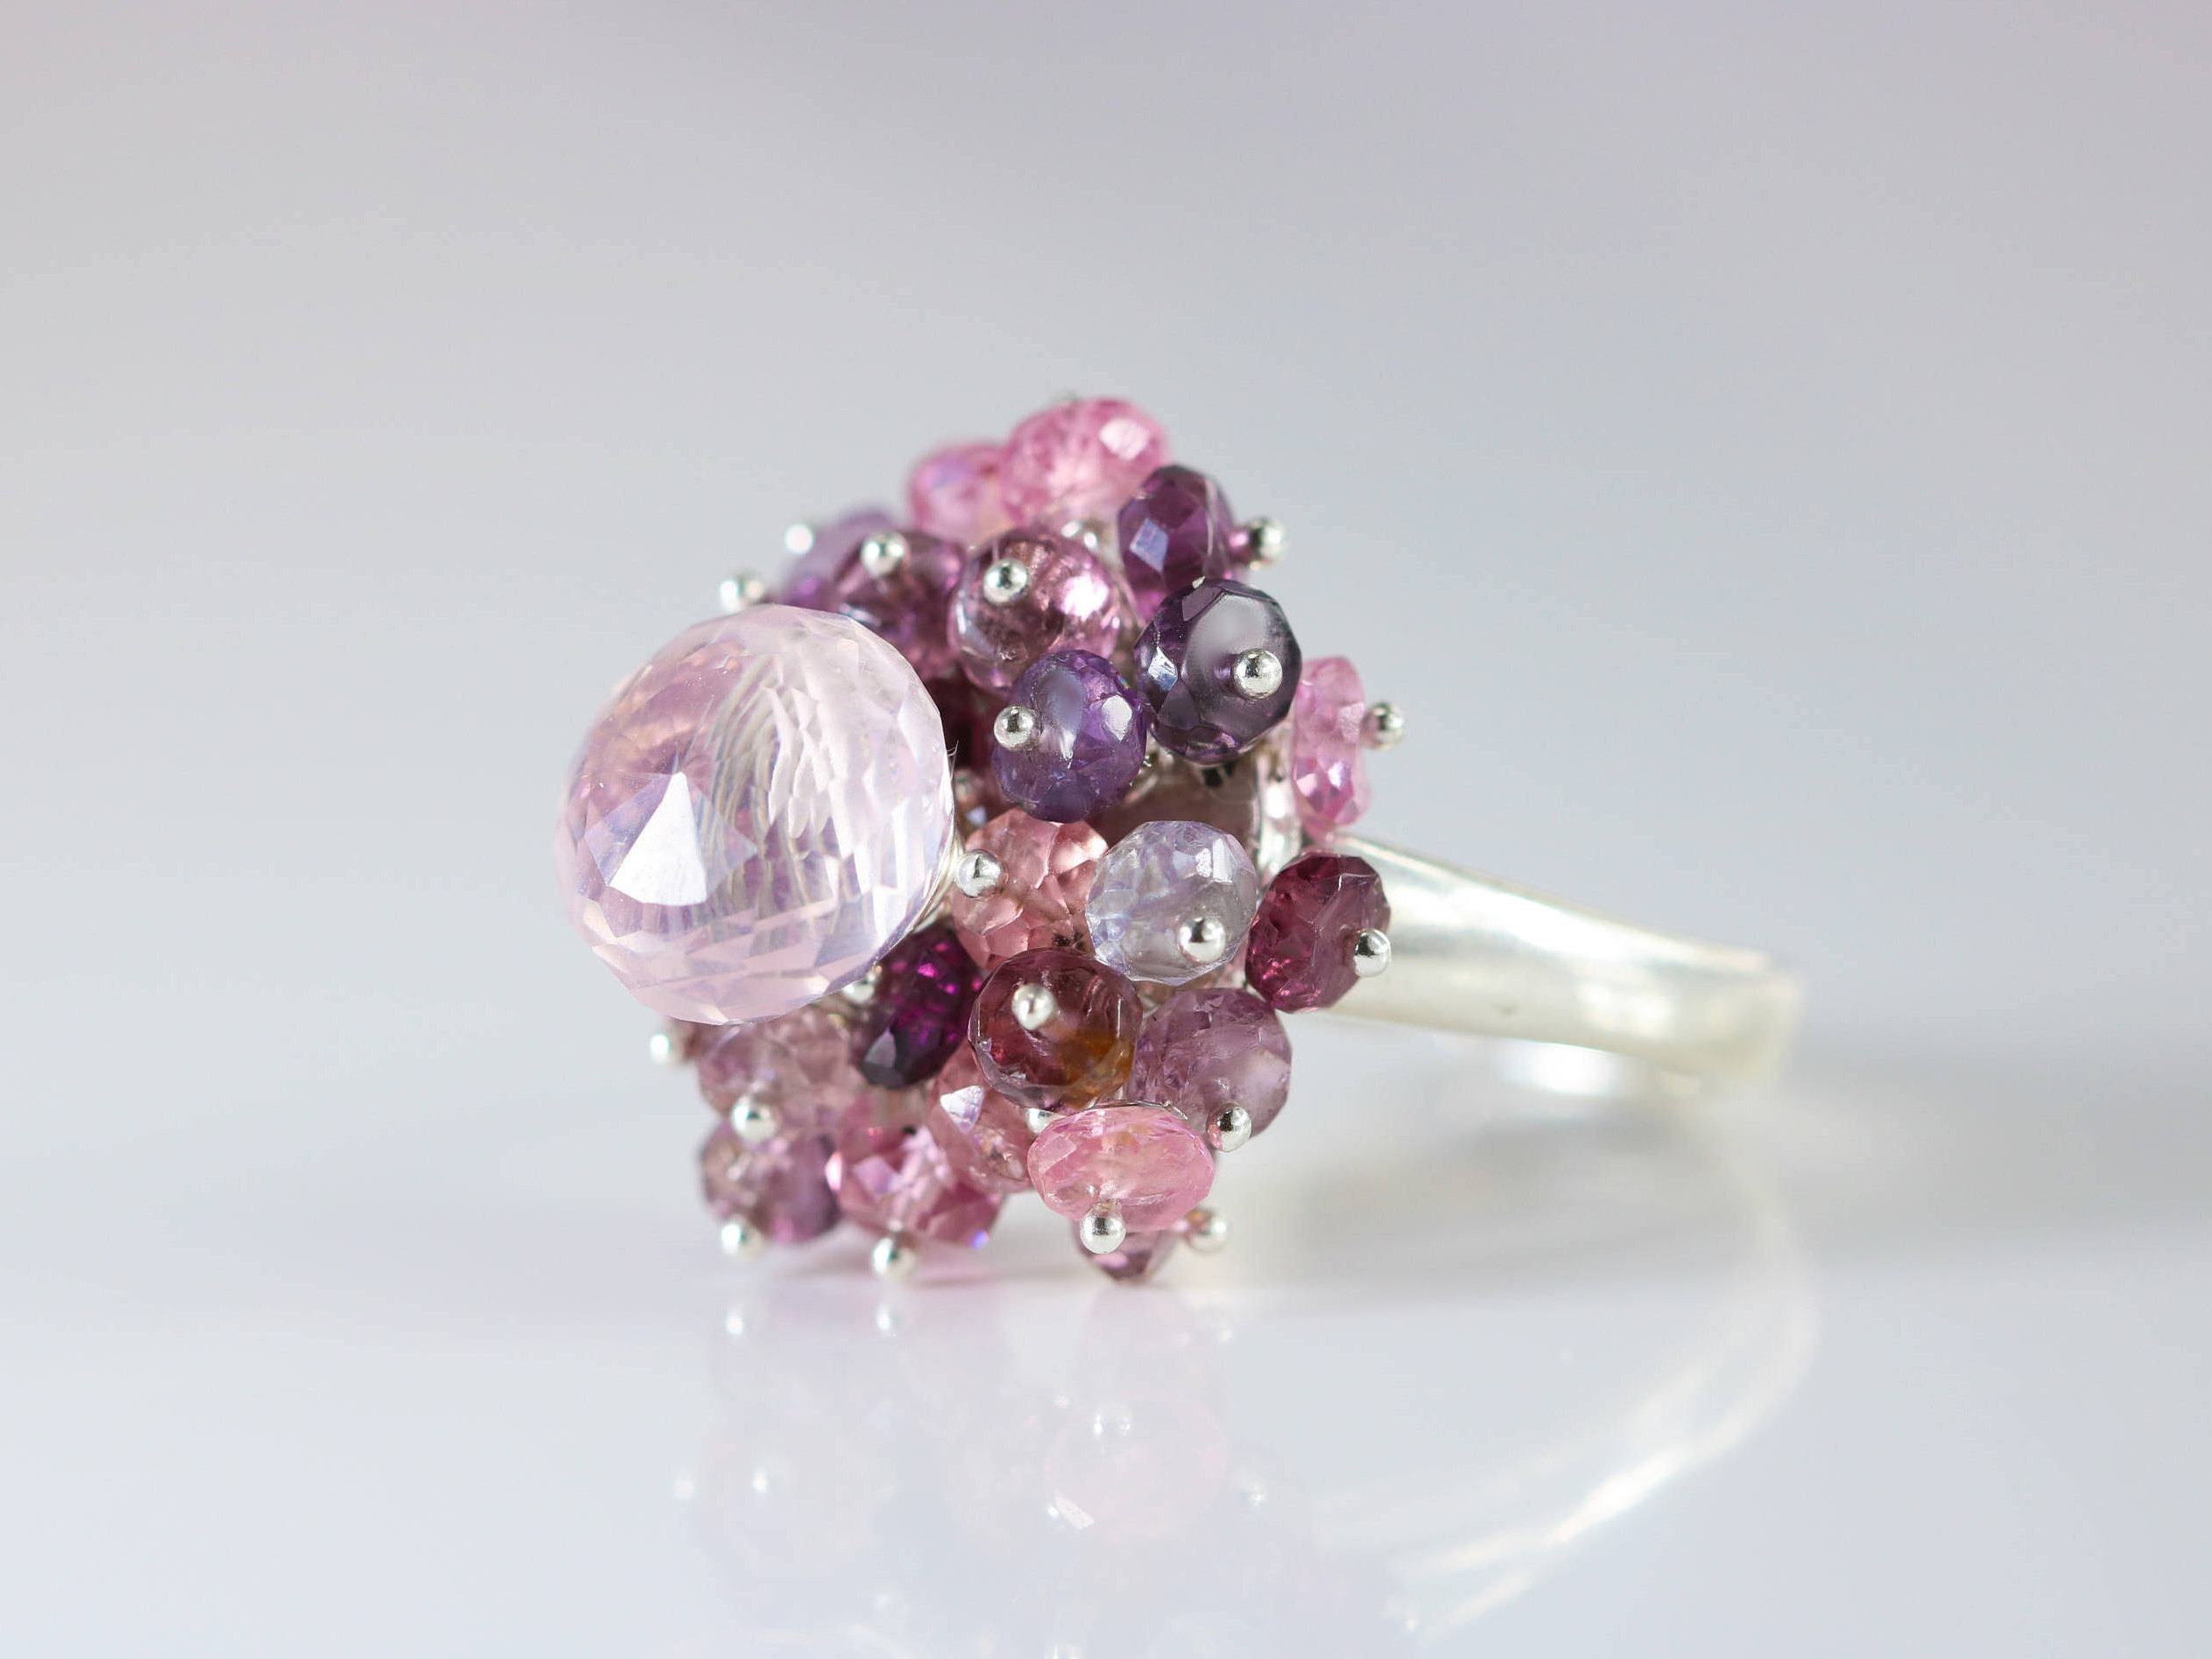 amethyst three jewellery stone sale hands labradorite rose and ottoman quartz outlet rings ring cocktail